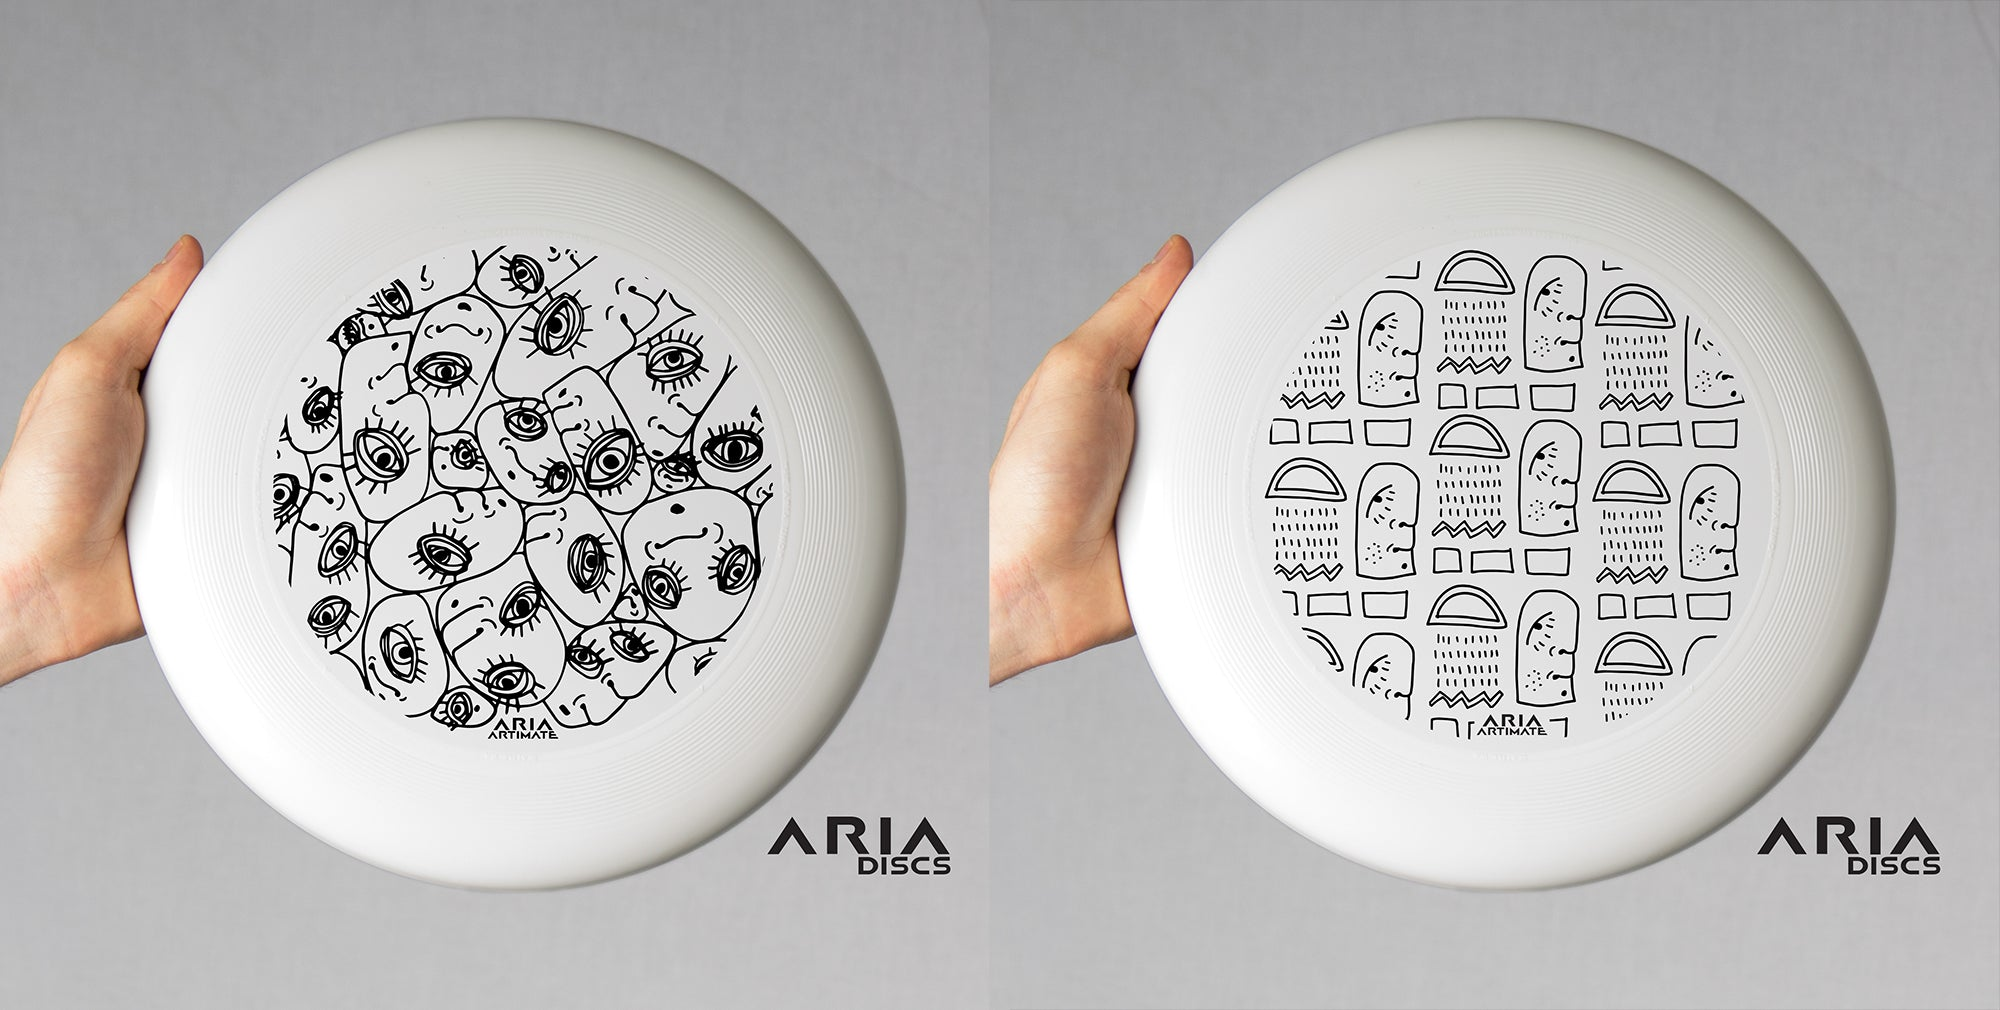 Hannah Leathers ARIA discs USAU WFDF approved ARTimate